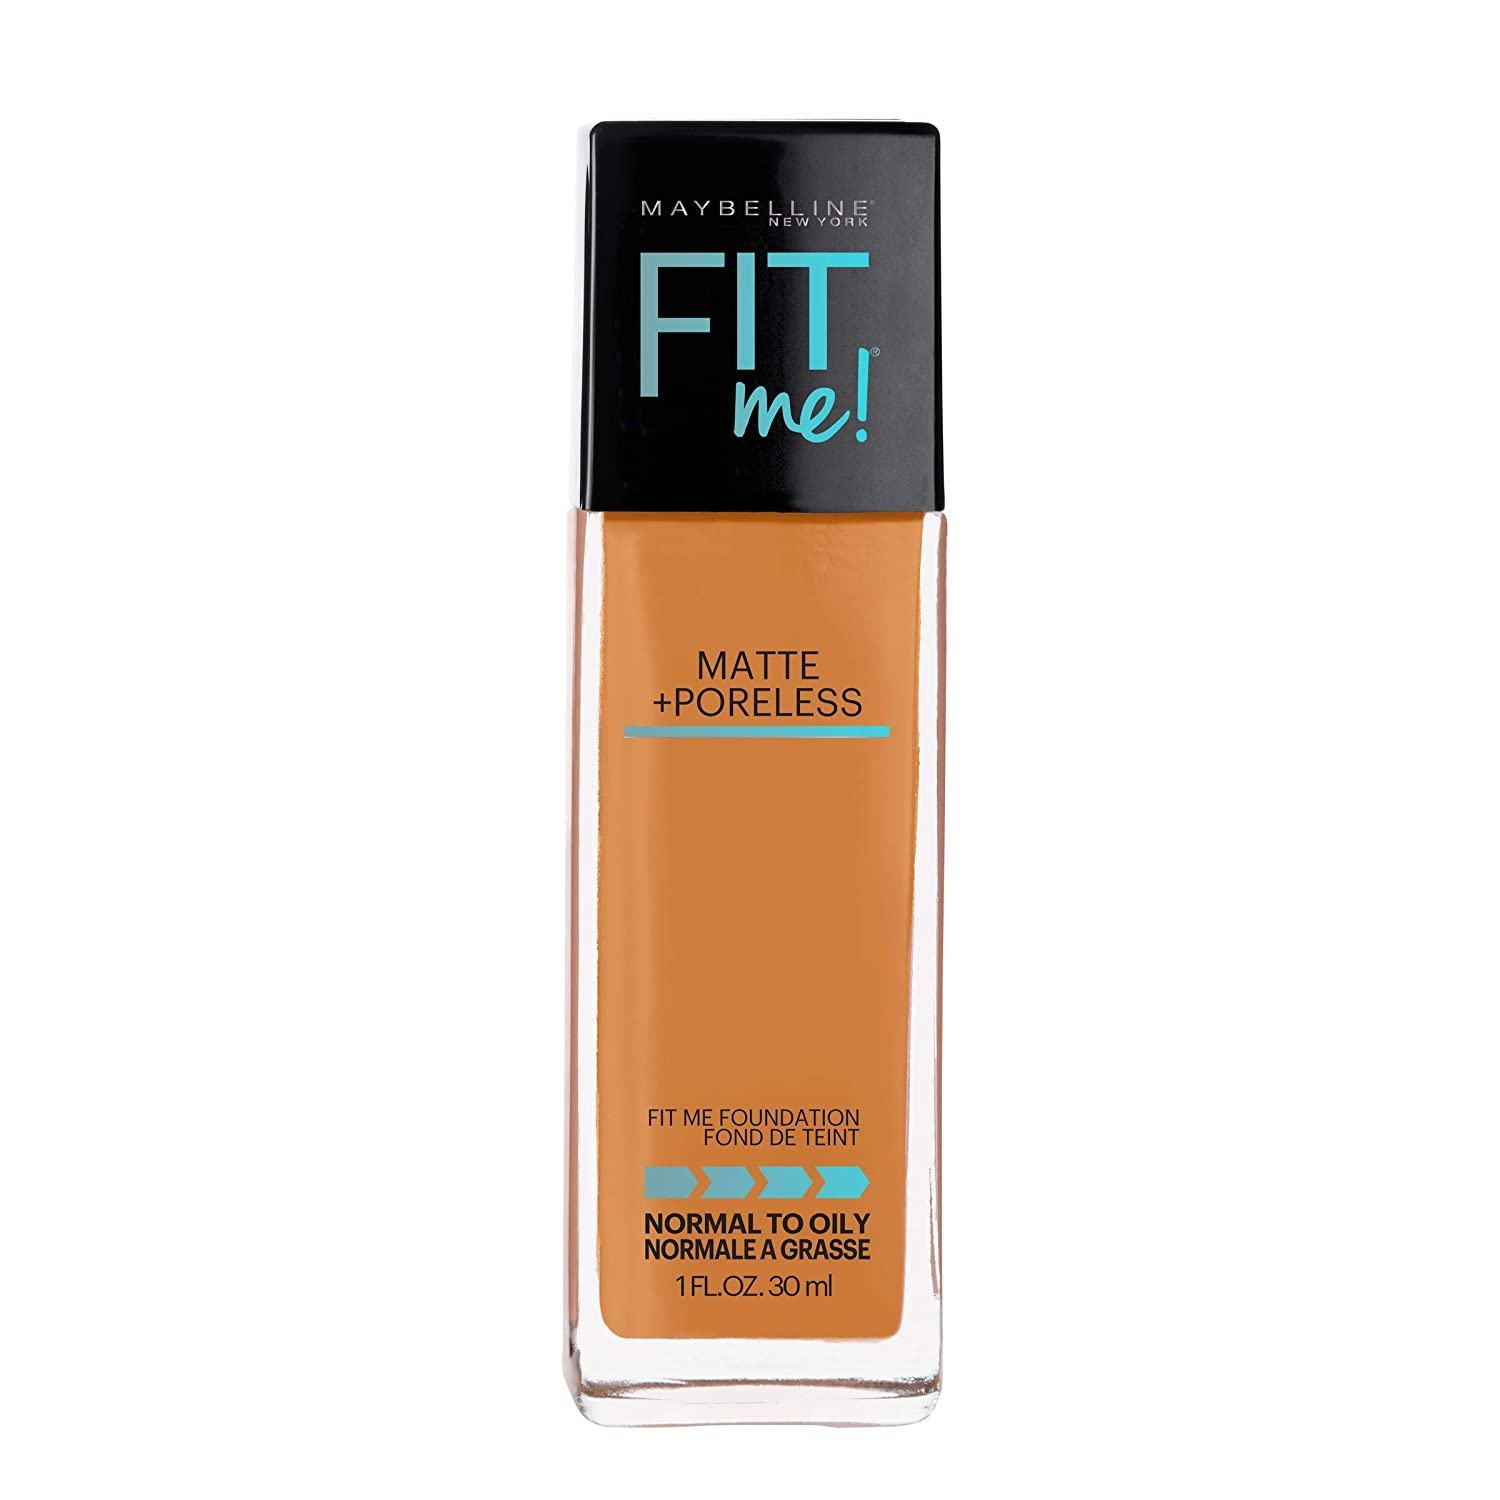 Maybelline Fit Me Matte + Poreless Liquid Foundation Makeup, Cappuccino, 1 fl. oz. Oil-Free Foundation